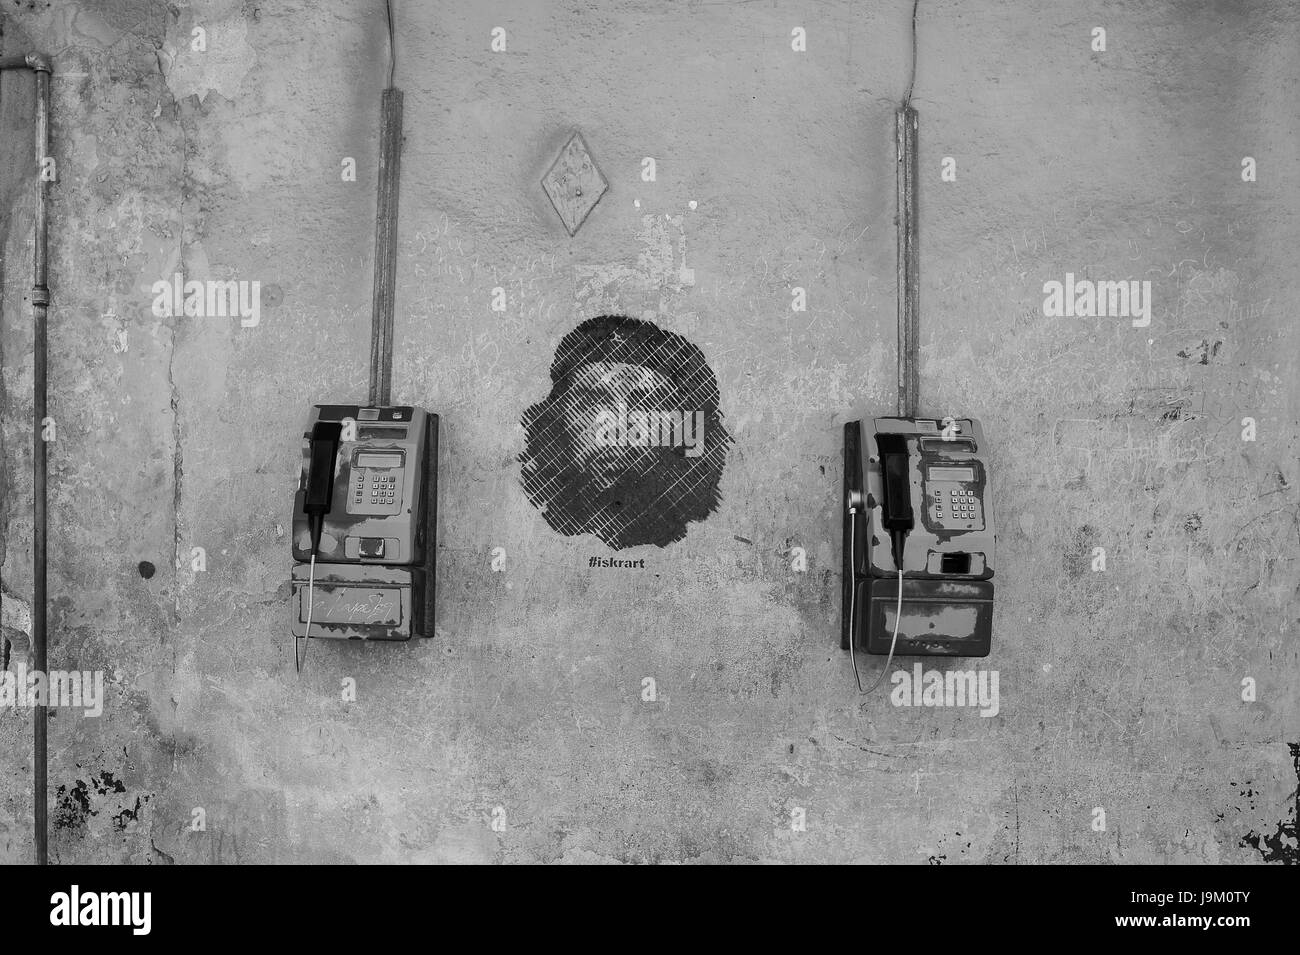 Payphones hanging on wall with ernesto che guevara stencil graffiti painting in Havana, Cuba - Stock Image